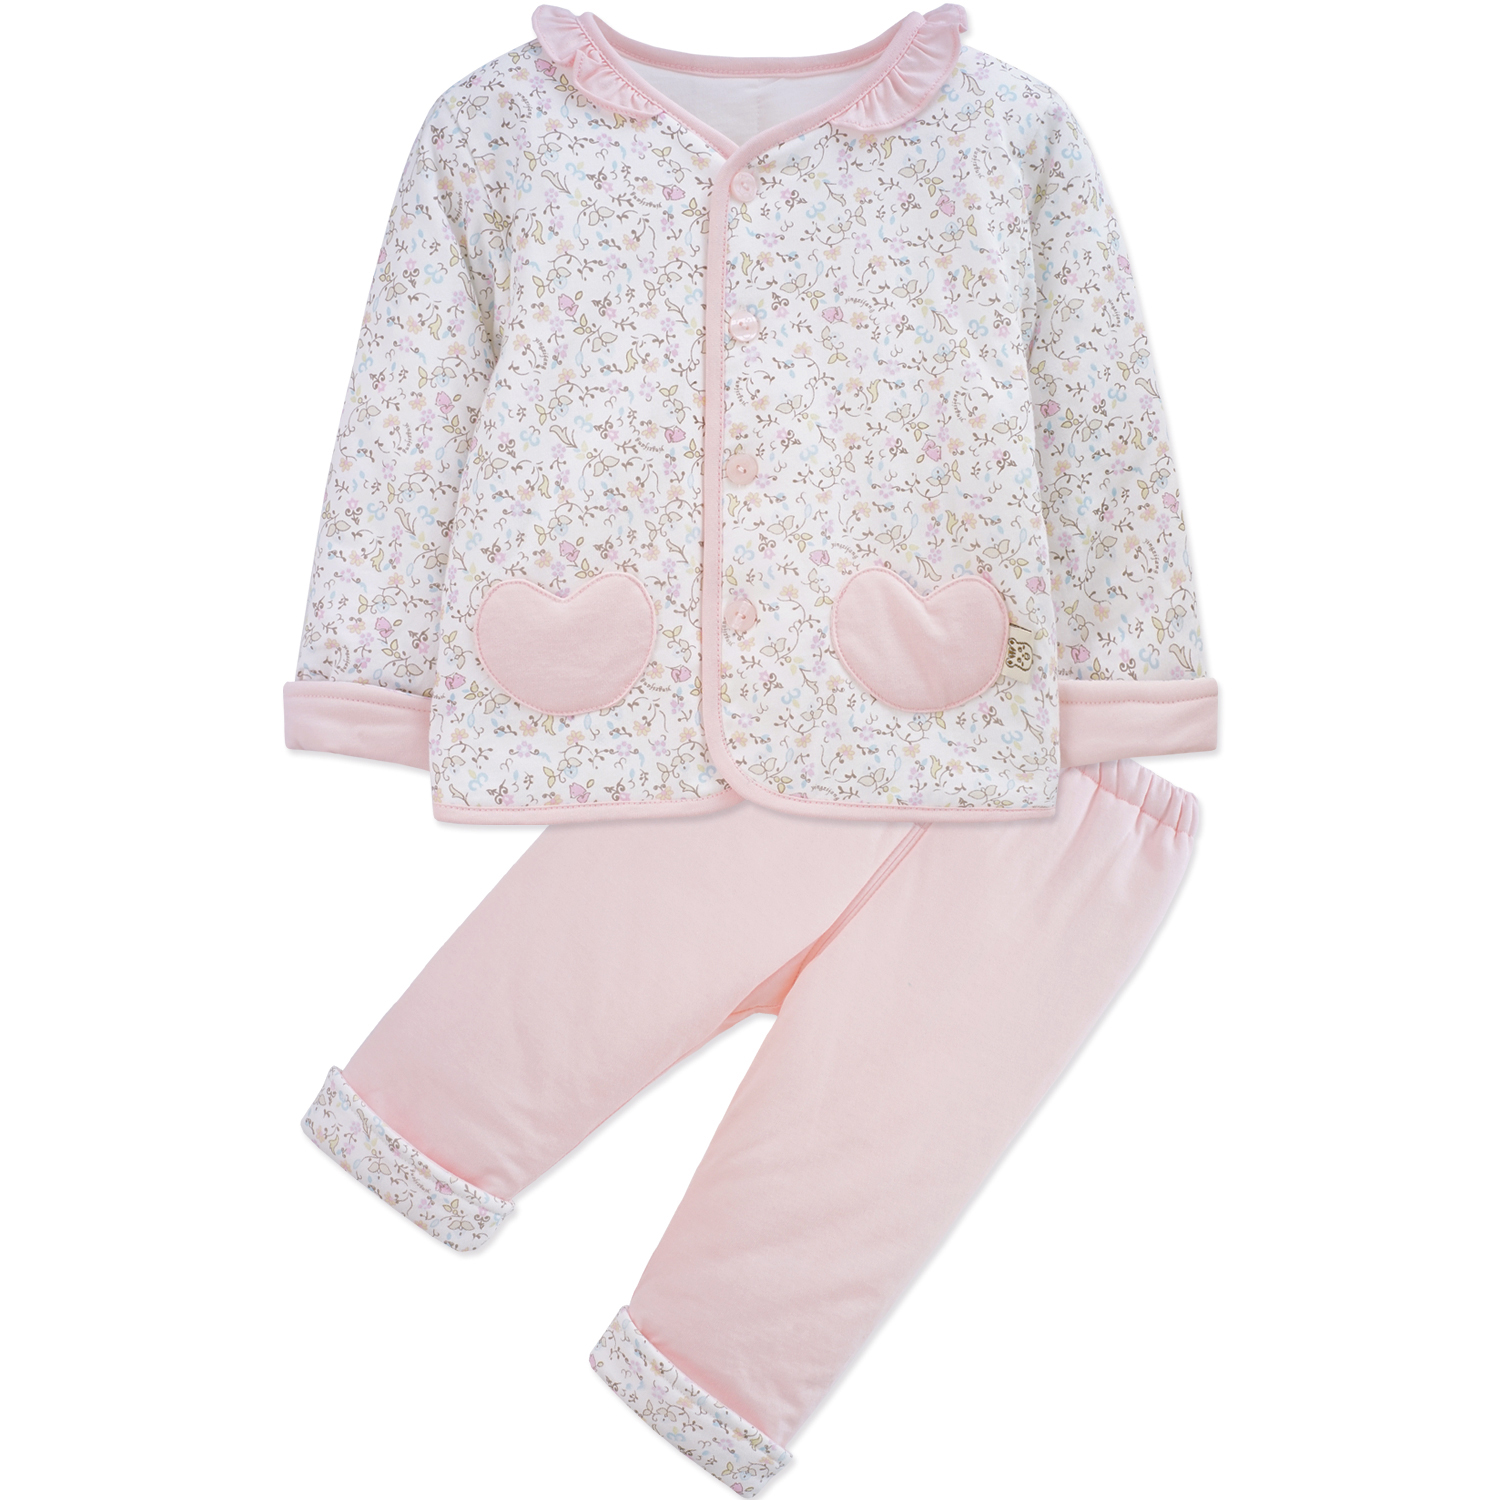 Yingzifang 2017 Baby Girls Clothing Cotton Floral Girls Clothing Set Baby Clothes Long-Sleeved T-Shirt+Pants 2Pcs Clothing Set 2017 baby clothes set my little boss long sleeve cotton t shirt tops and pant trouser 2pcs outfit bebek giyim clothing set